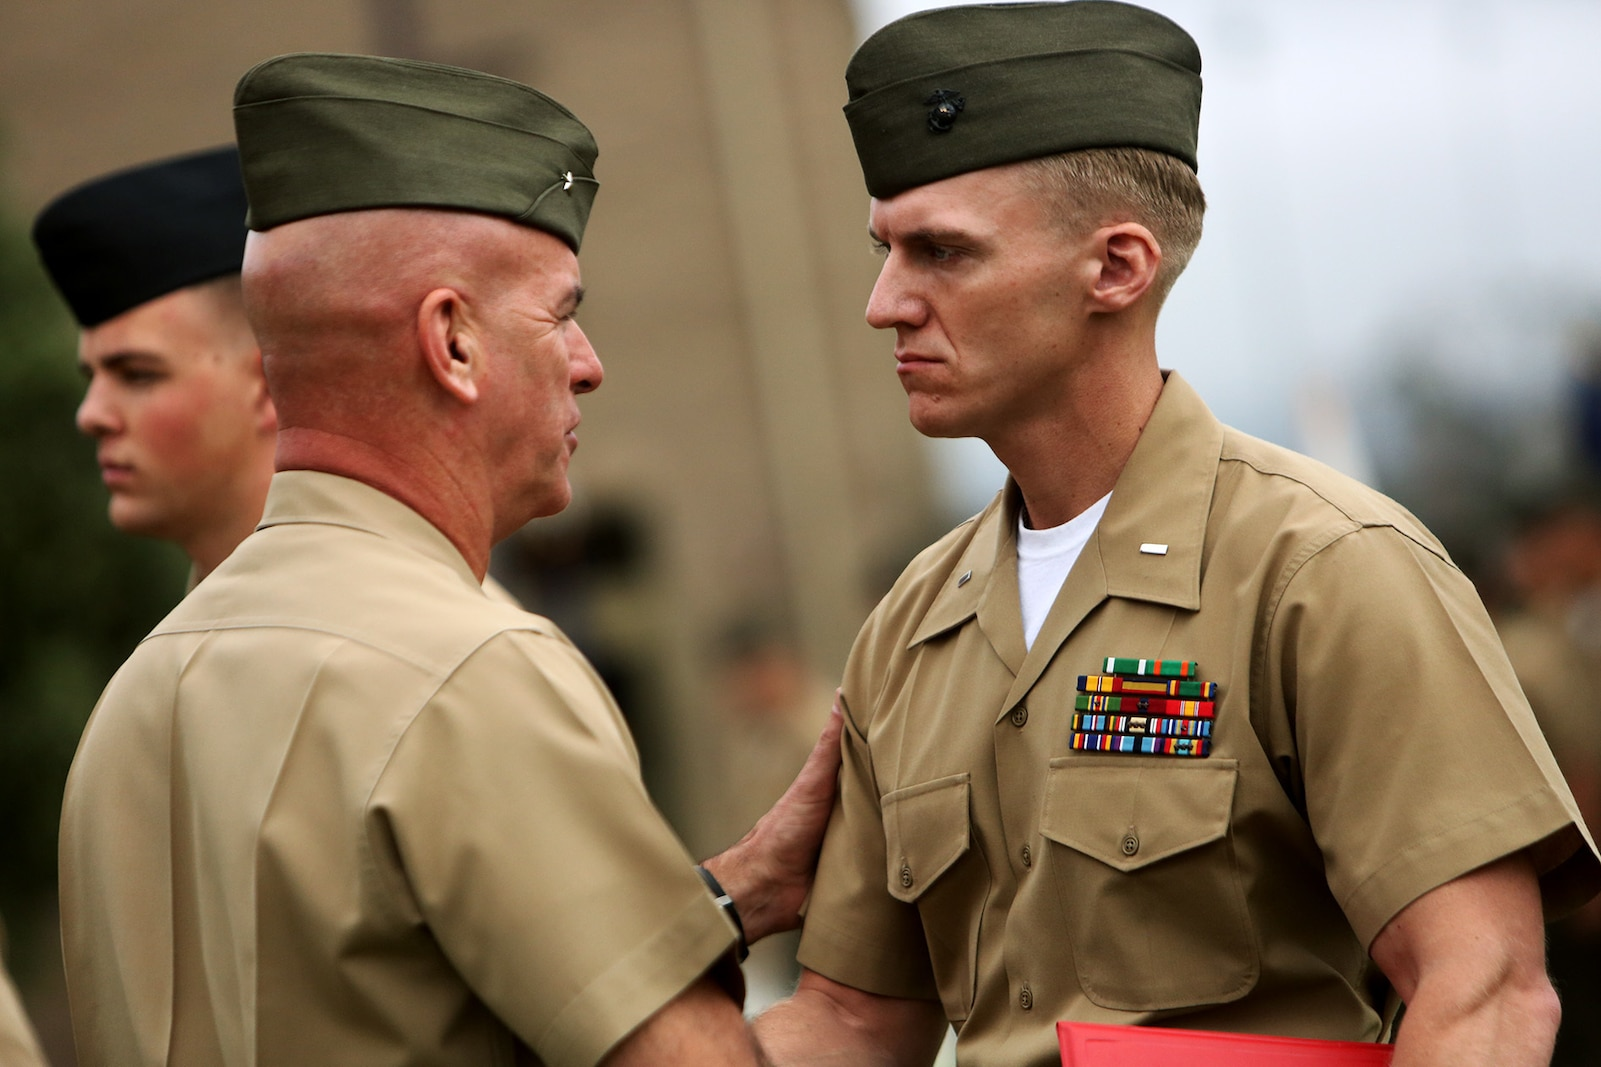 U.S. Marine 1st Lt. Frankie Doerr is handed an award during an awards ceremony aboard Camp Pendleton, Calif., April 22, 2016. Doerr is the 2nd platoon commander with Motor Transportation Company, Combat Logistics Battalion 5. Ten Marines and Sailors with 1st Marine Logistics Group were recognized for their outstanding performance throughout the year. Awards ranged from a Certificate of Commendation, Marine of the year, Noncommissioned Officer of the Year, and the Navy and Marine Corps Achievement Medal.  (U.S. Marine Corps photo by Sgt. Laura Gauna/released)